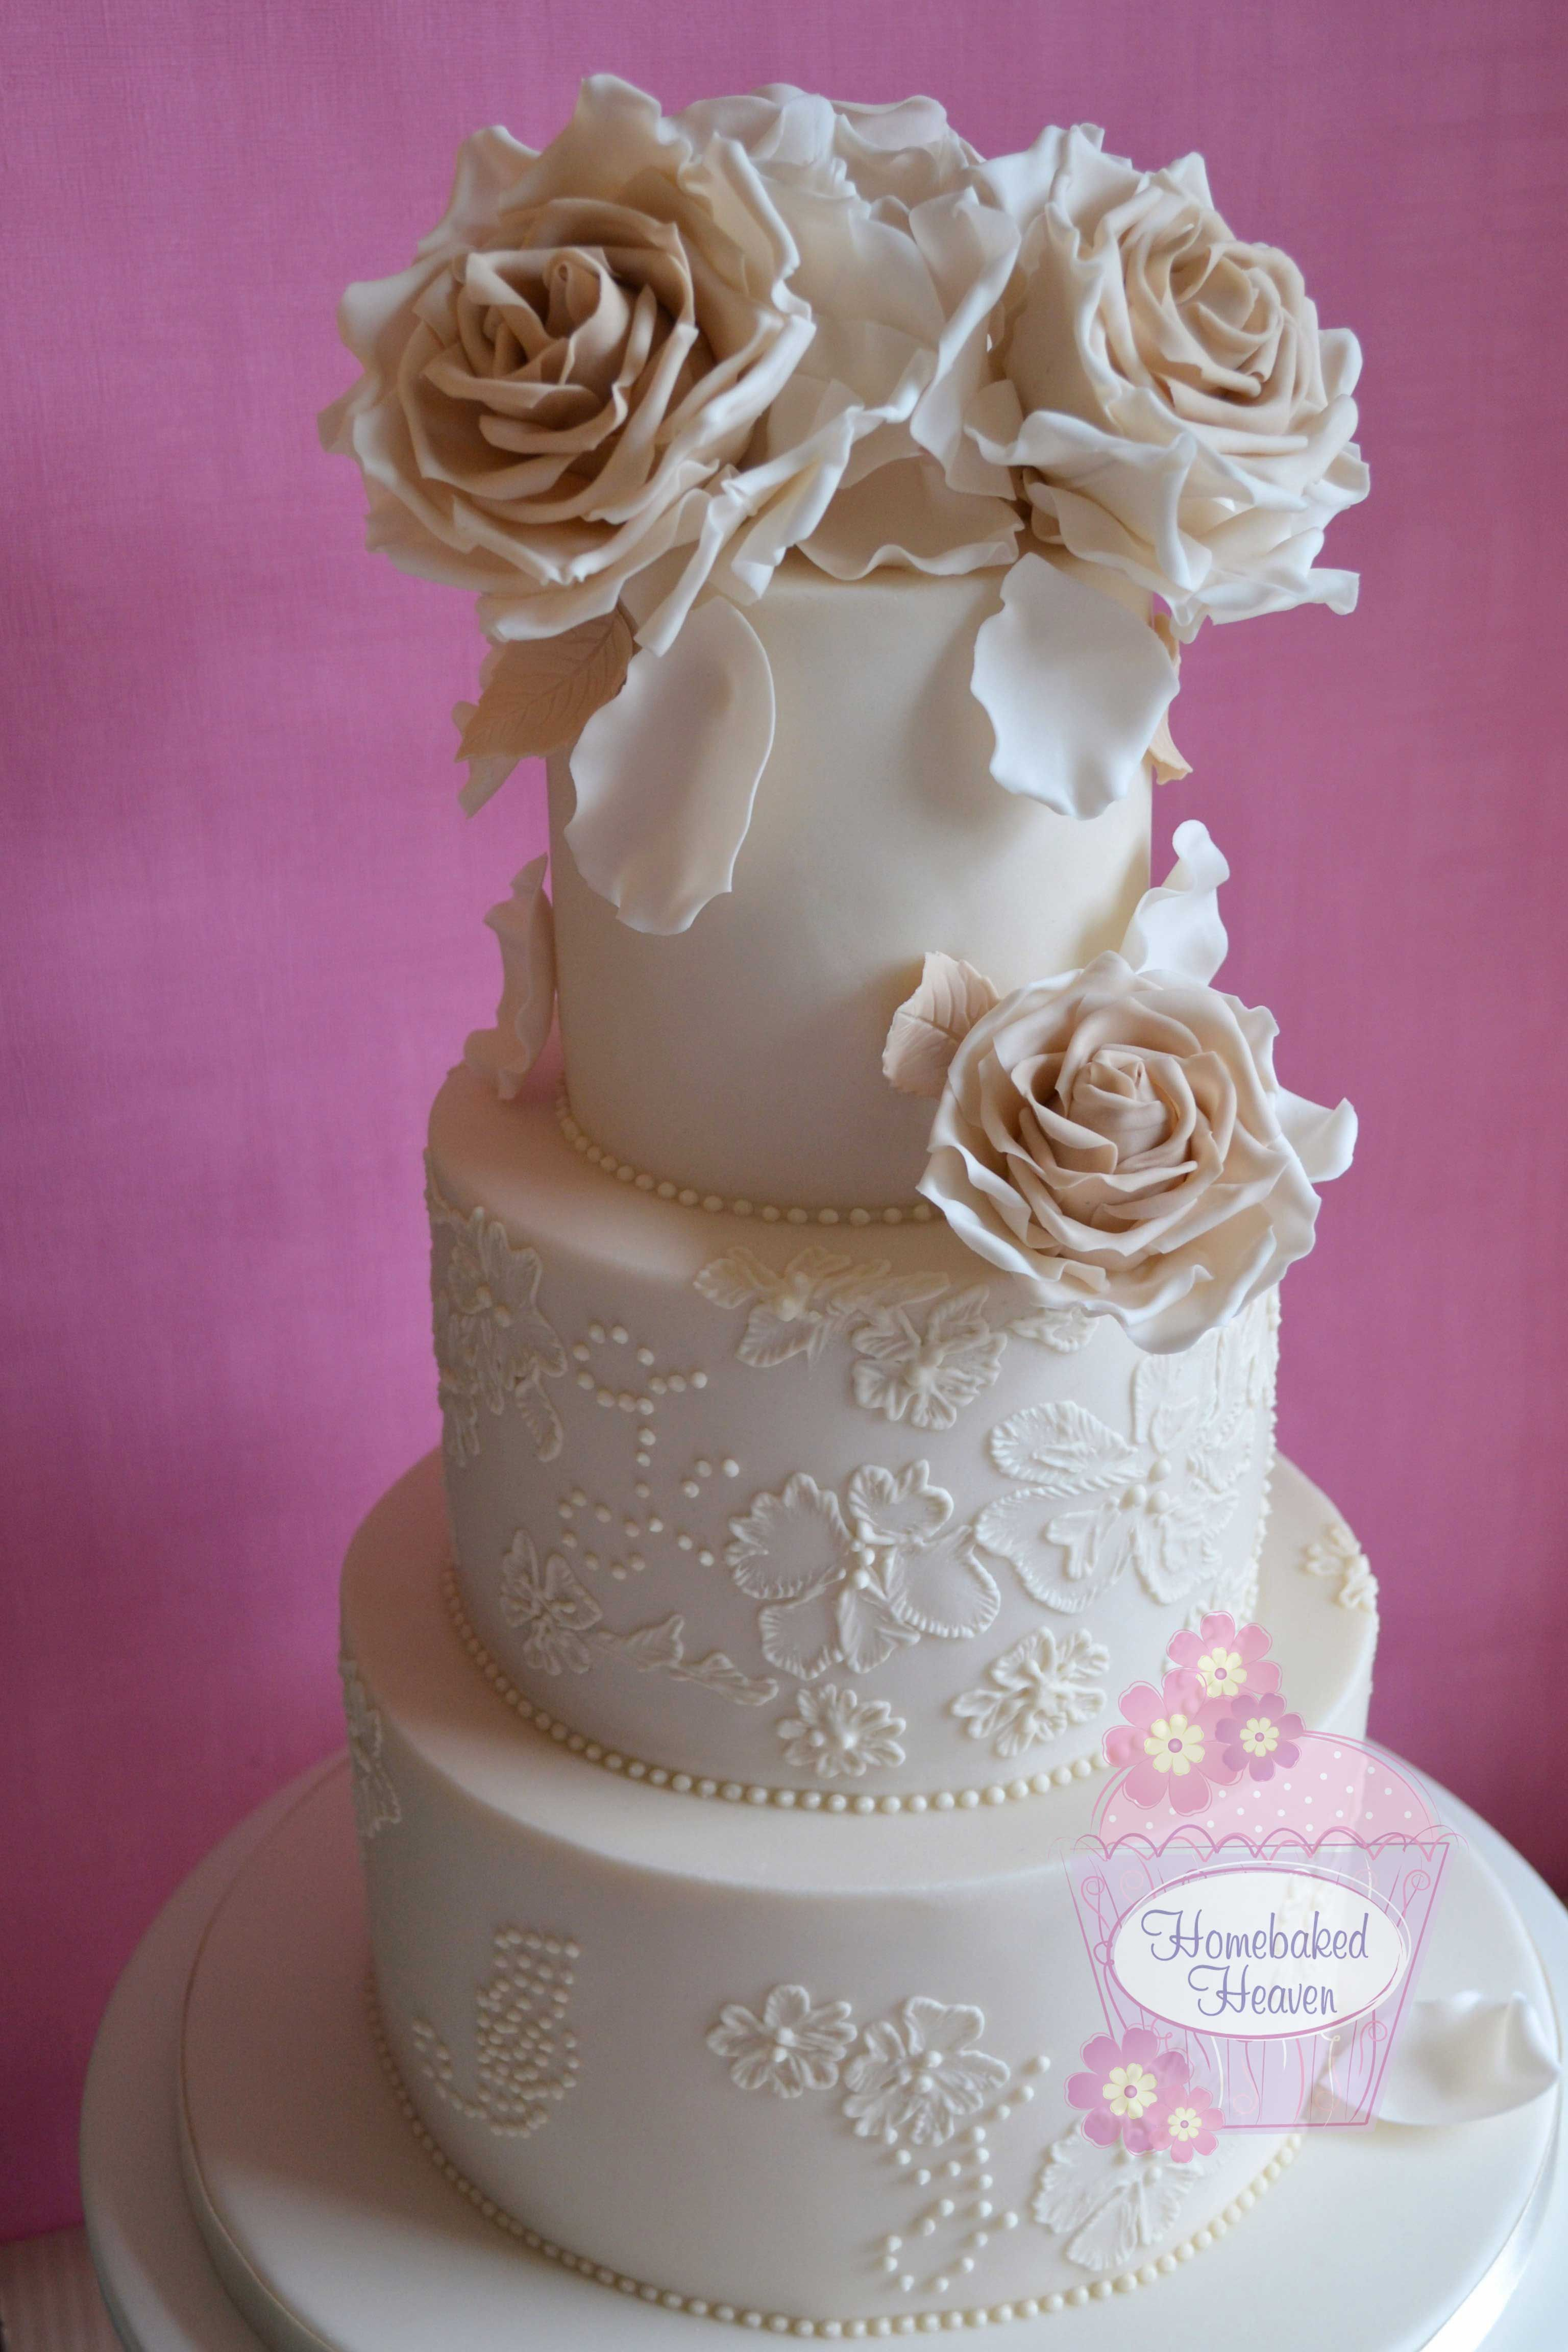 Ivory wedding cake with beige roses to match the bridesmaid